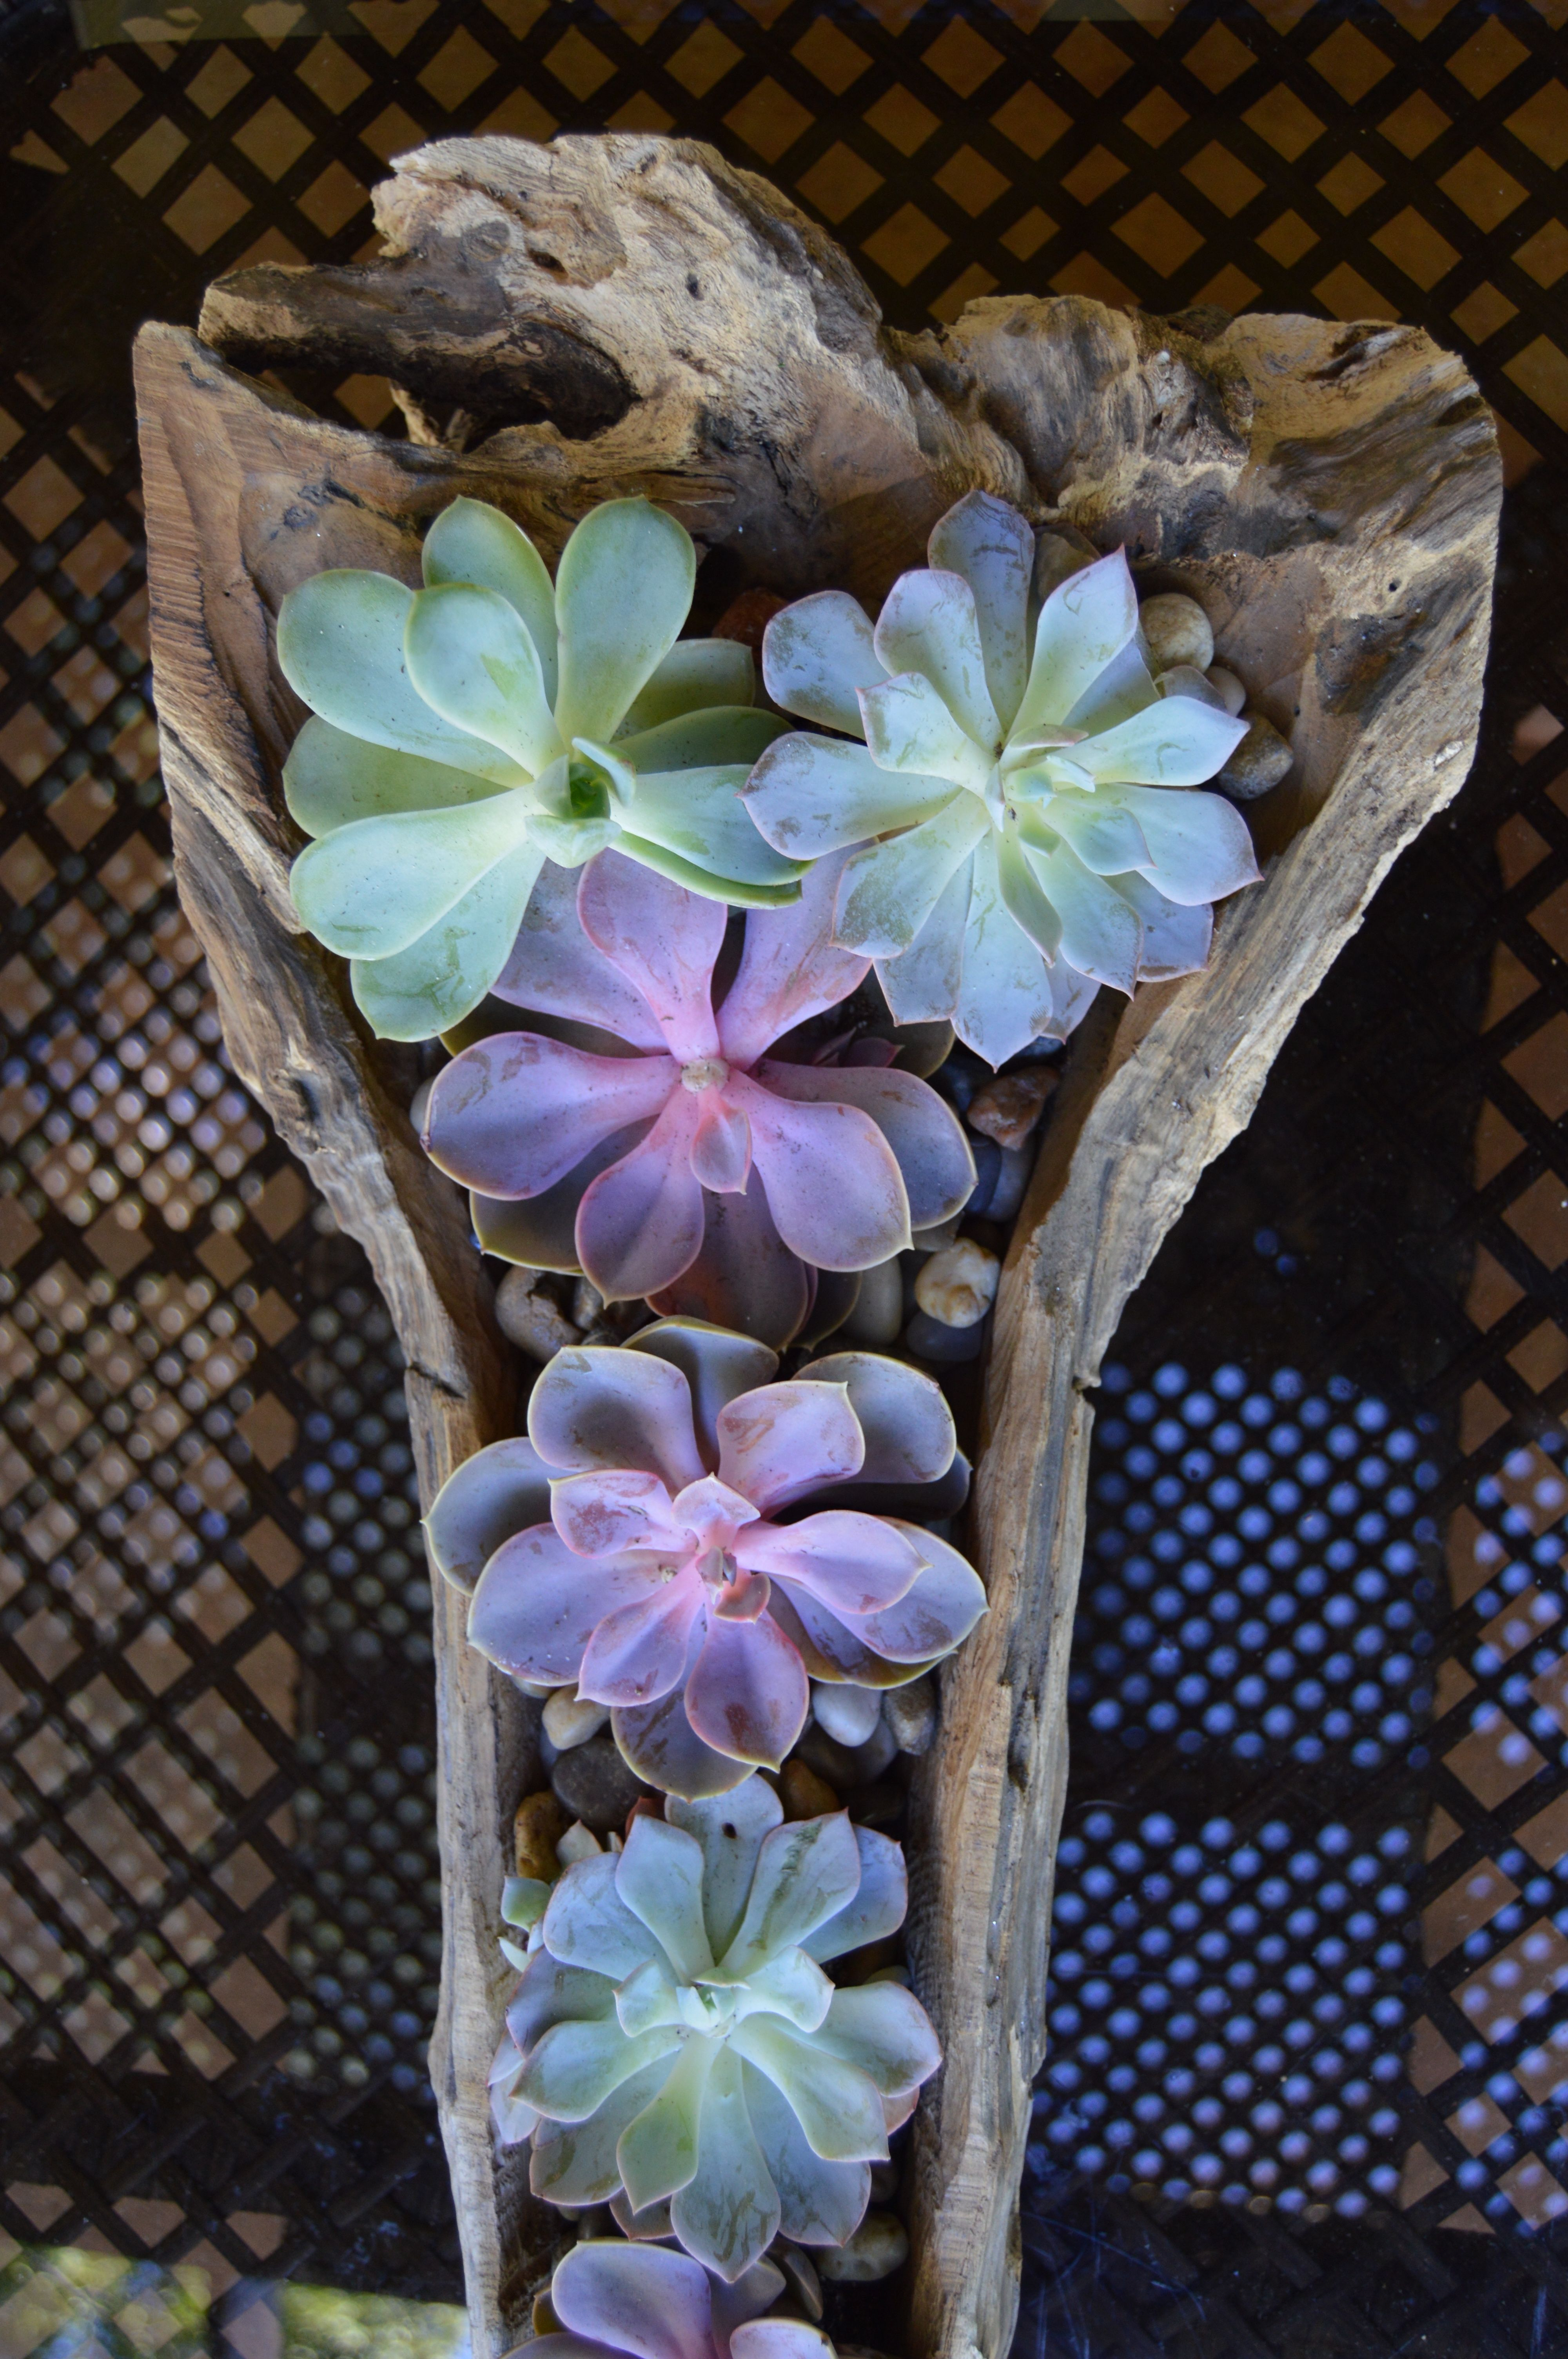 When looking for floral alternatives, don't forget about the unique quality and colors of the ever popular Succulents!